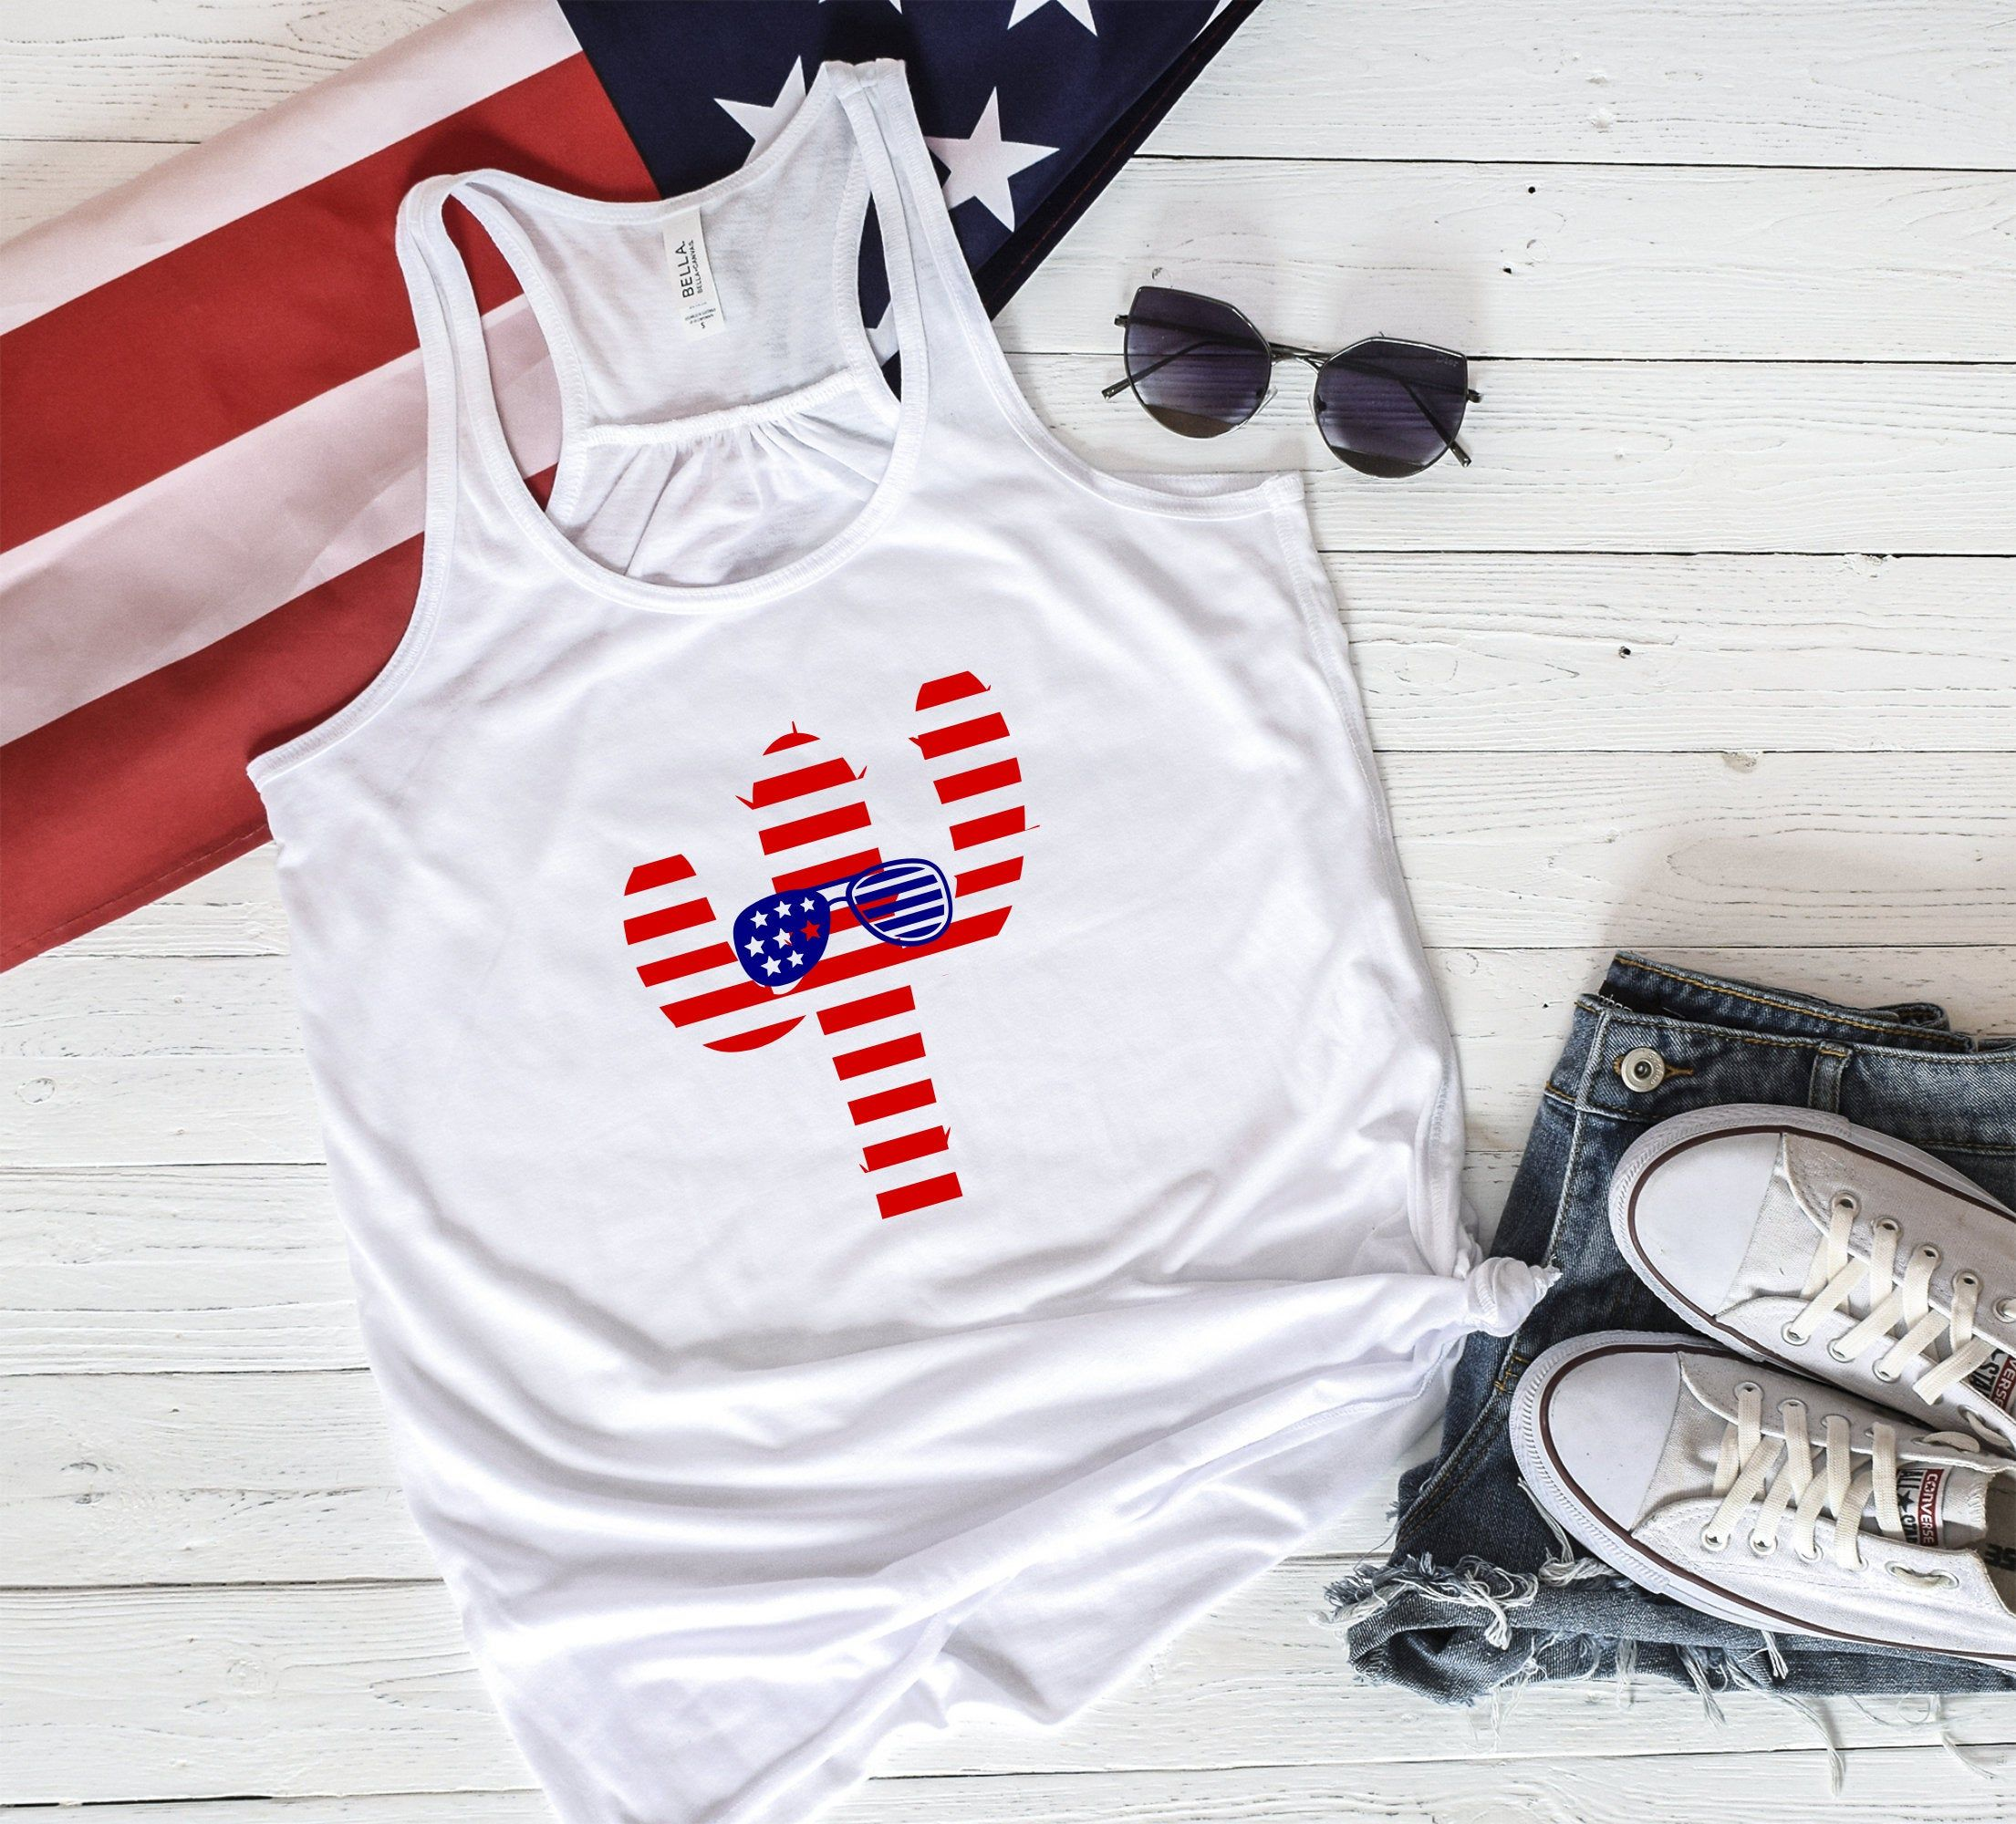 4th Of July Tank Top Cactus Tank Top American Flag Tank Top Forth Of July Cactus Patriotic Tank Top Cute Cactus Tank Sunglasses With Images